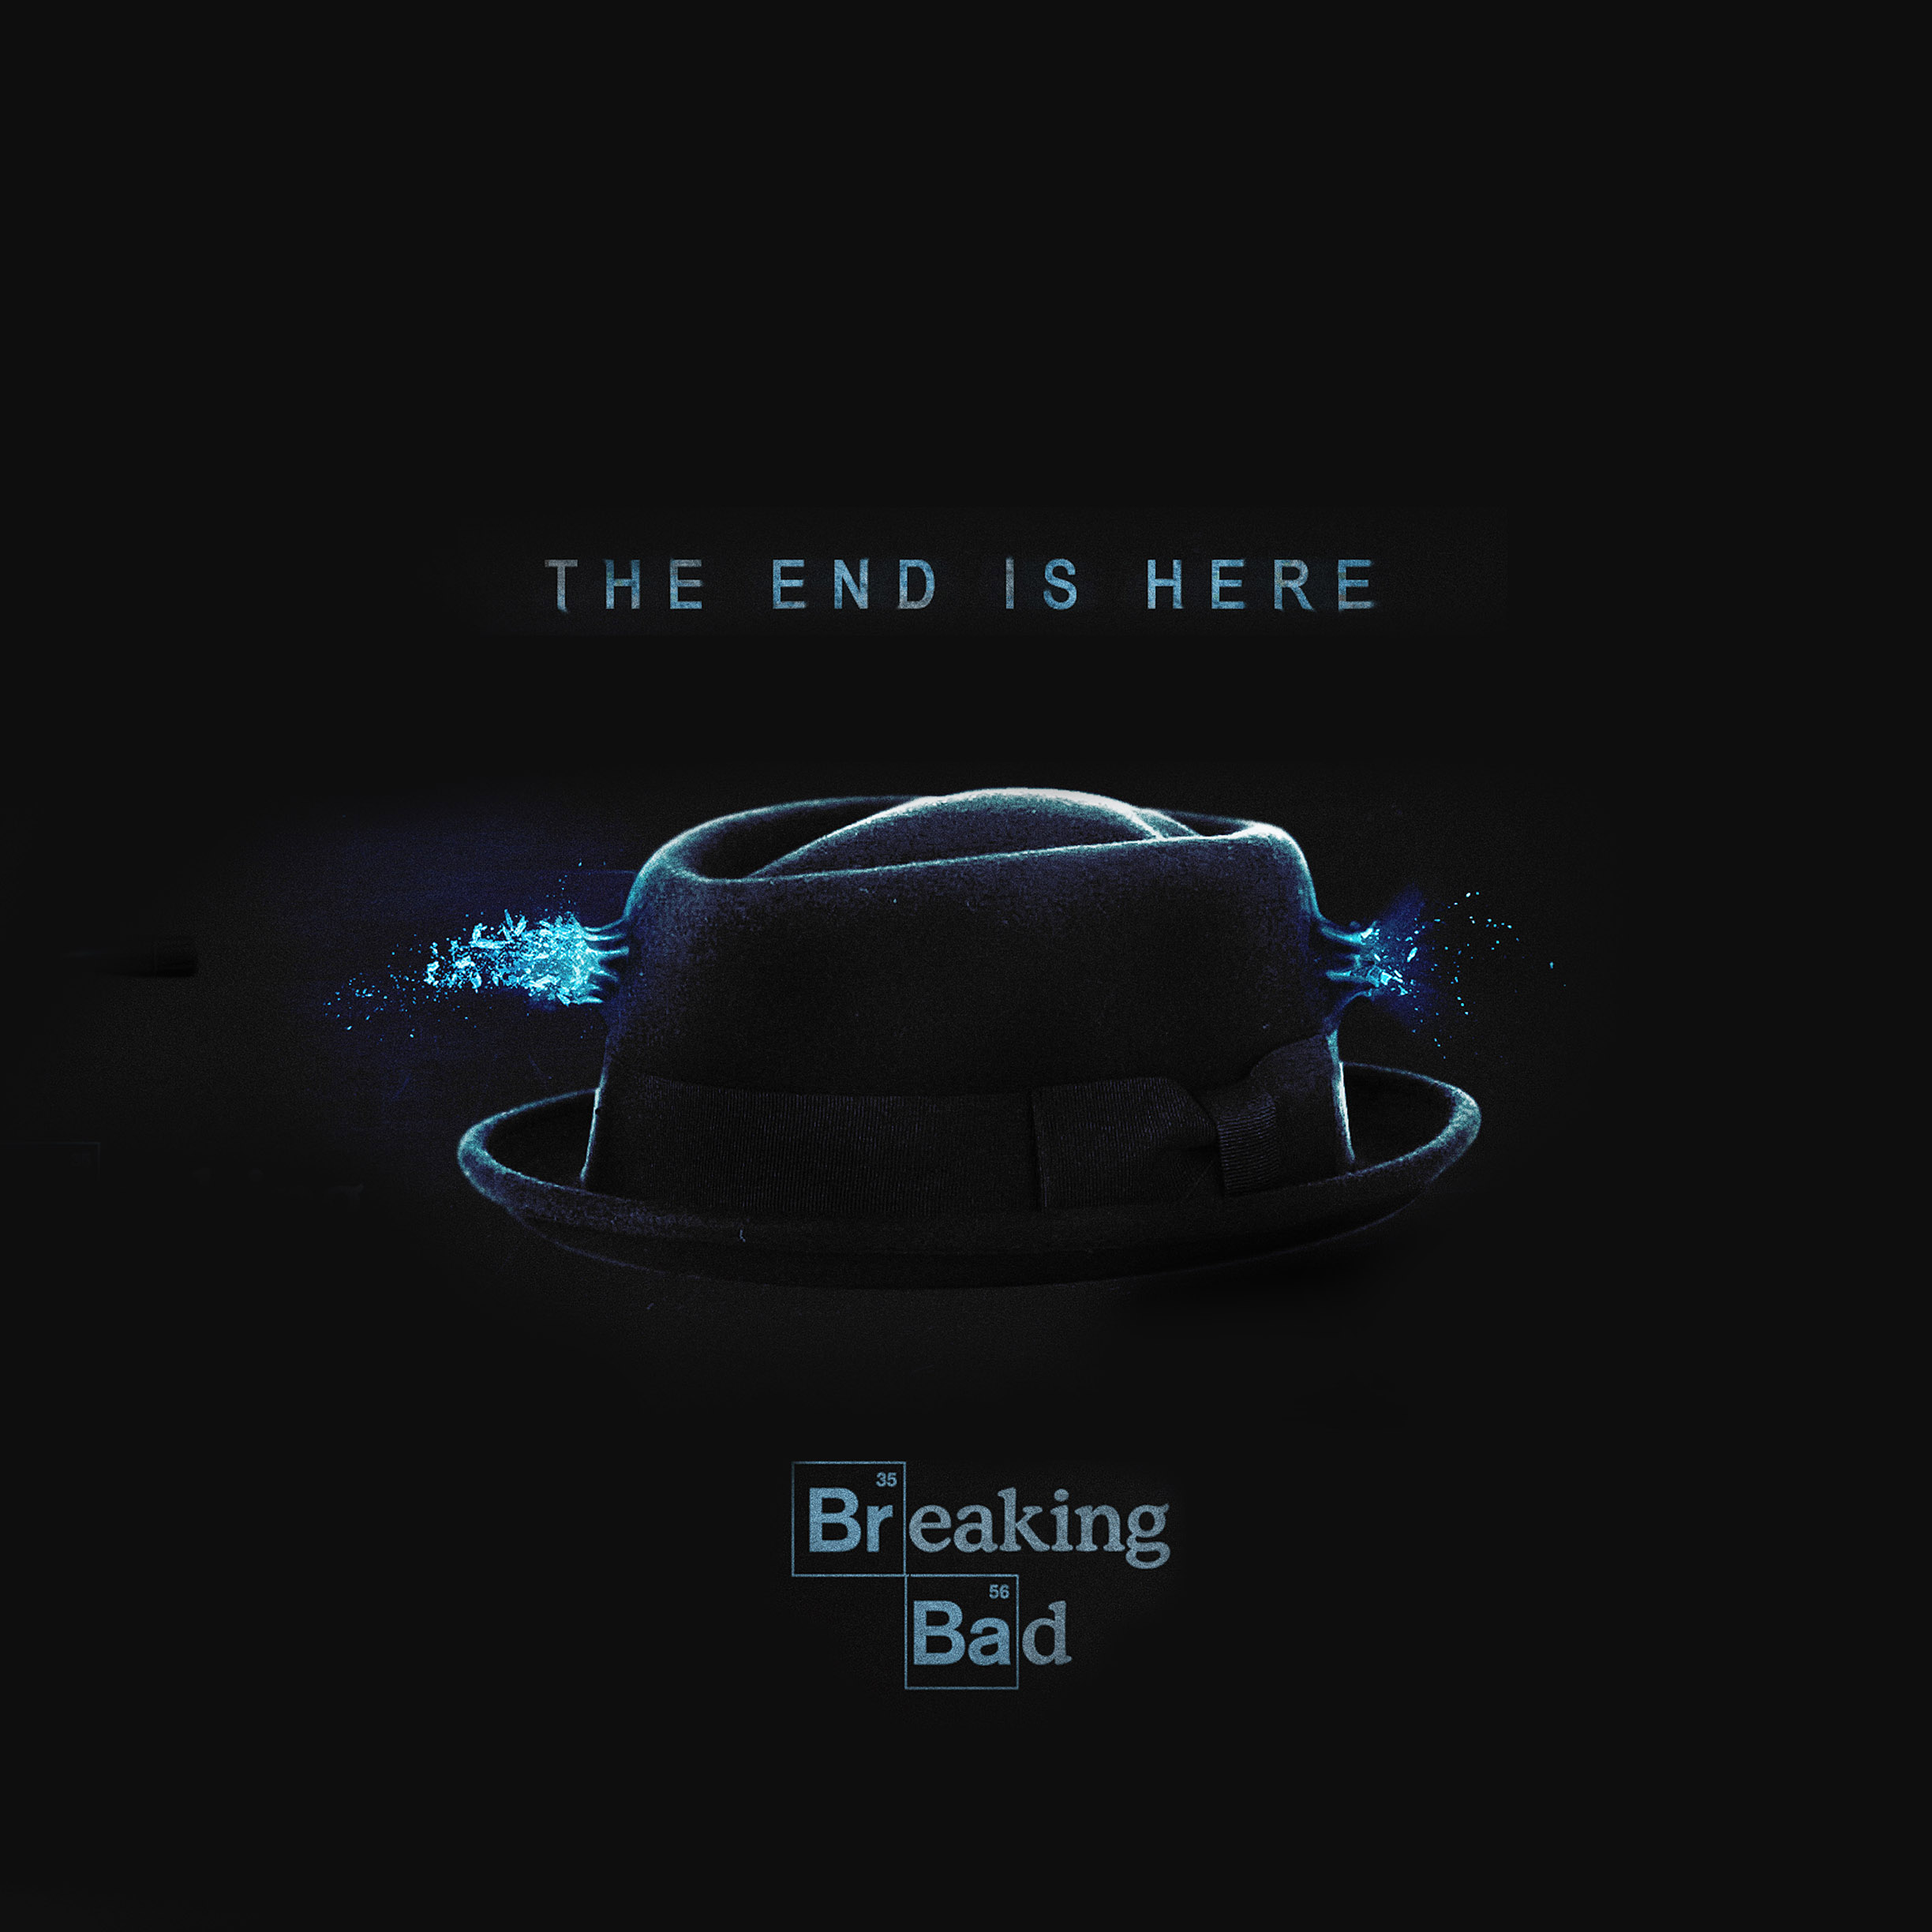 Breaking Bad Hd Iphone Wallpaper Breaking Bad Wallpapers For Iphone And Ipad